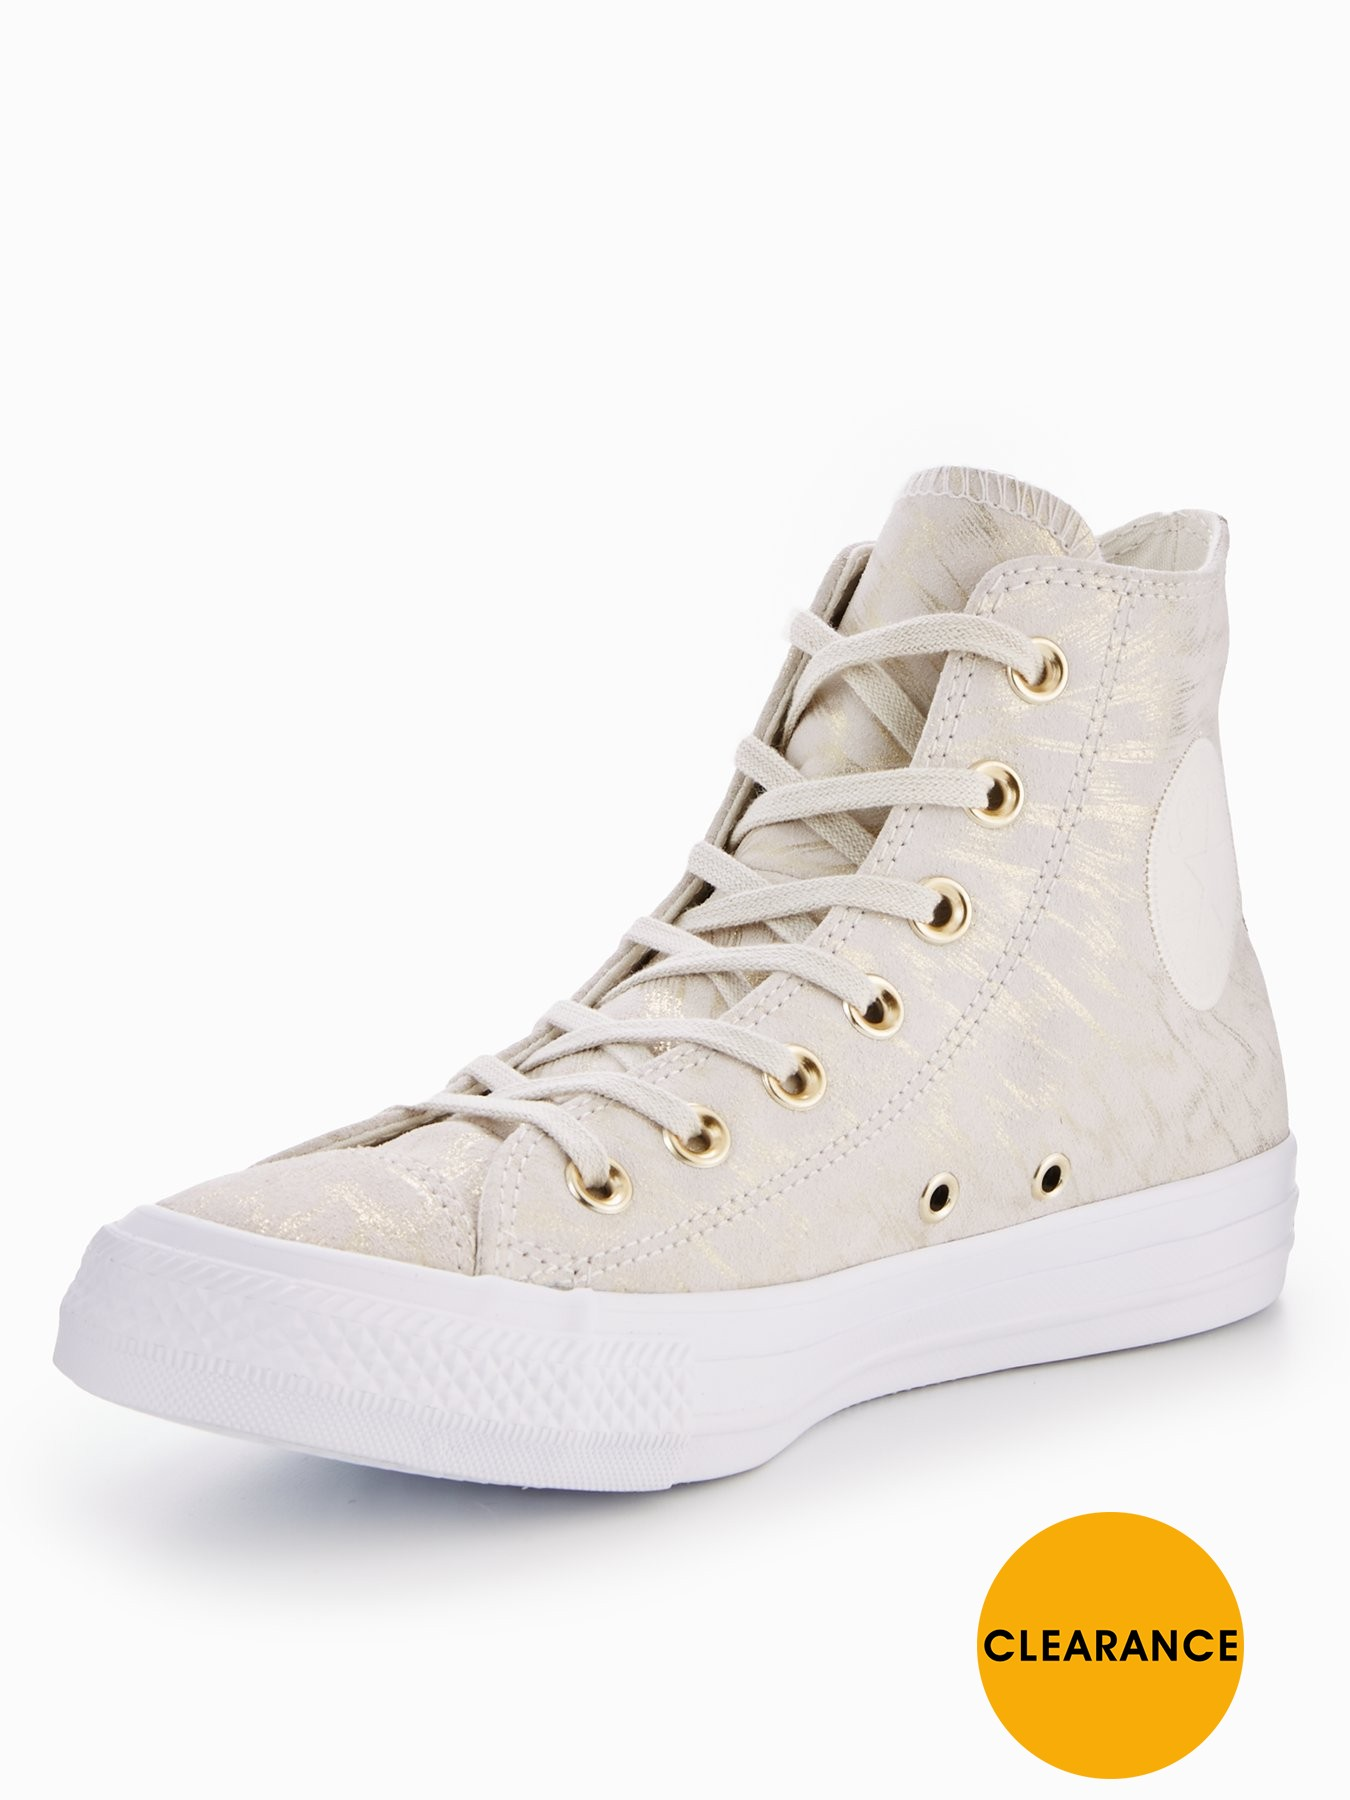 Converse Converse Chuck Taylor All Star Hi Shimmer Suede 1600162073 Women's Shoes Converse Trainers